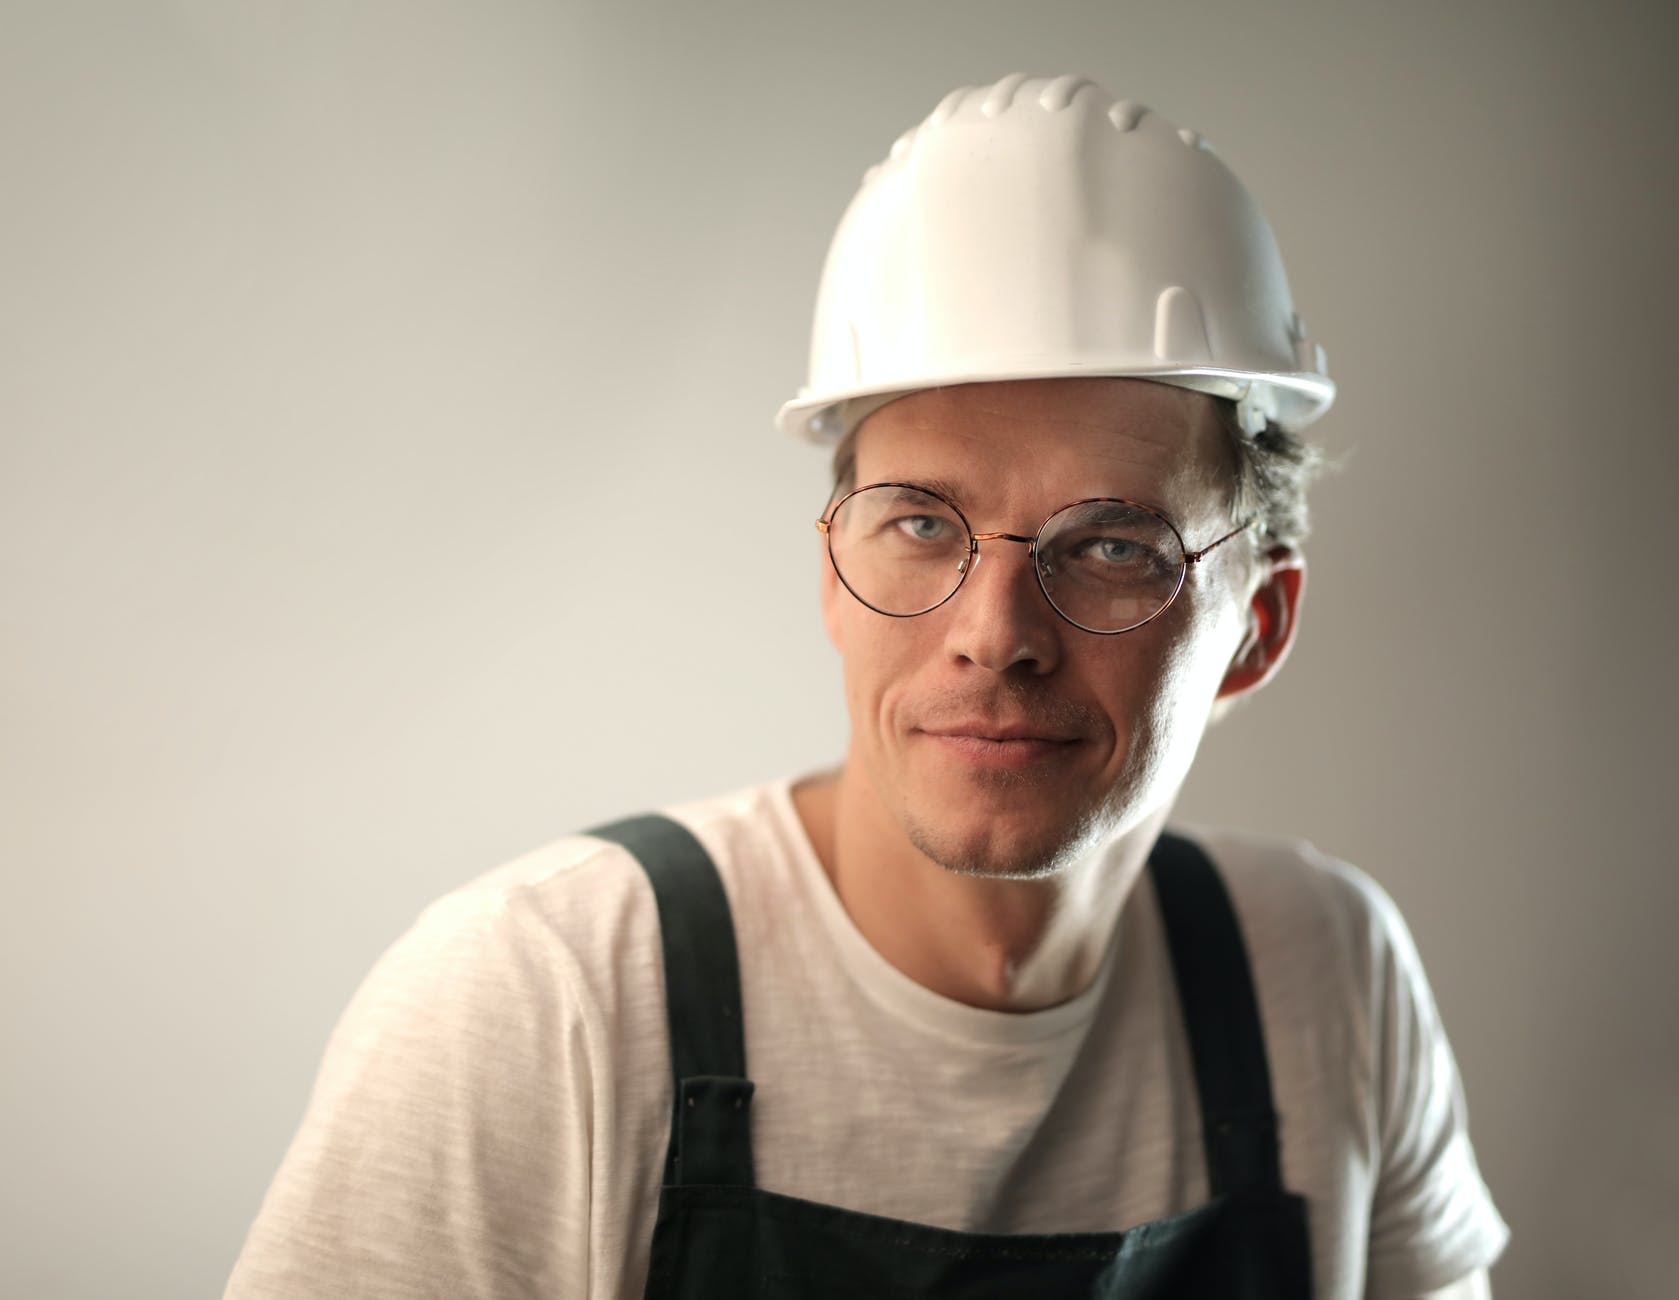 smiling male worker in construction helmet in studio